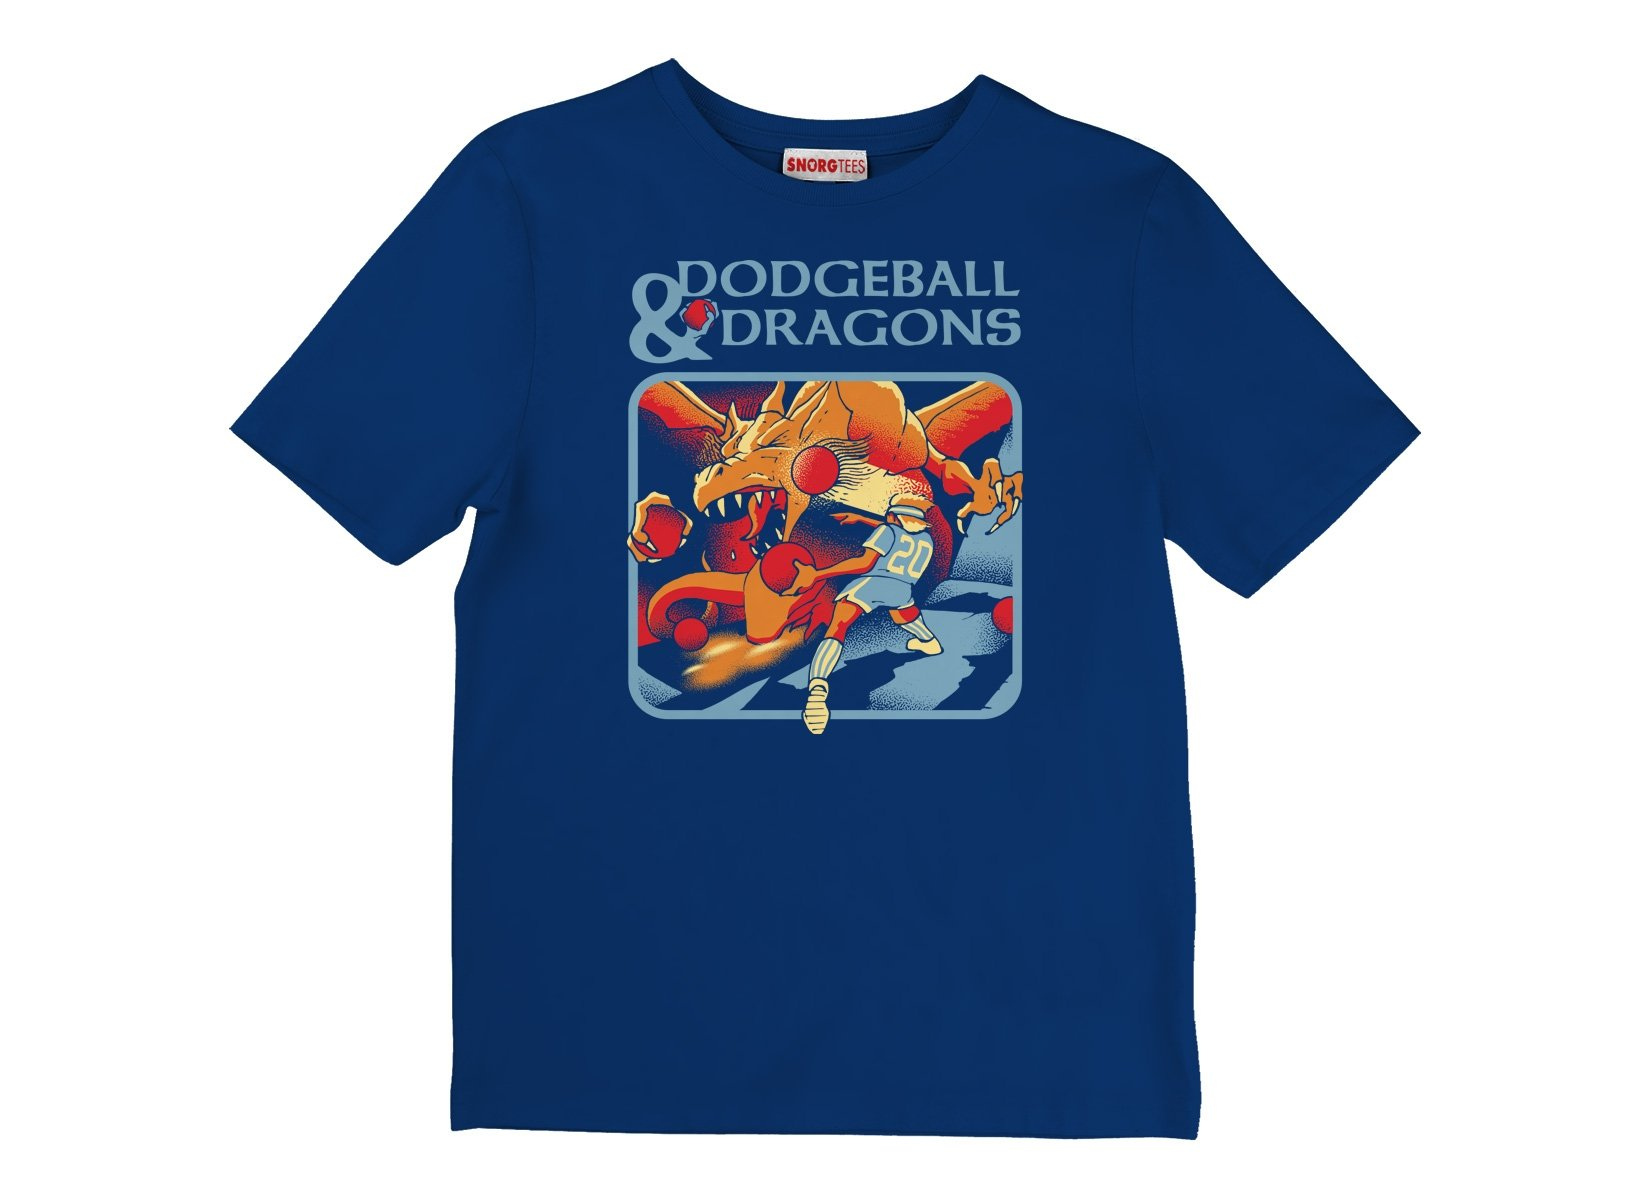 Dodgeball And Dragons on Kids T-Shirt